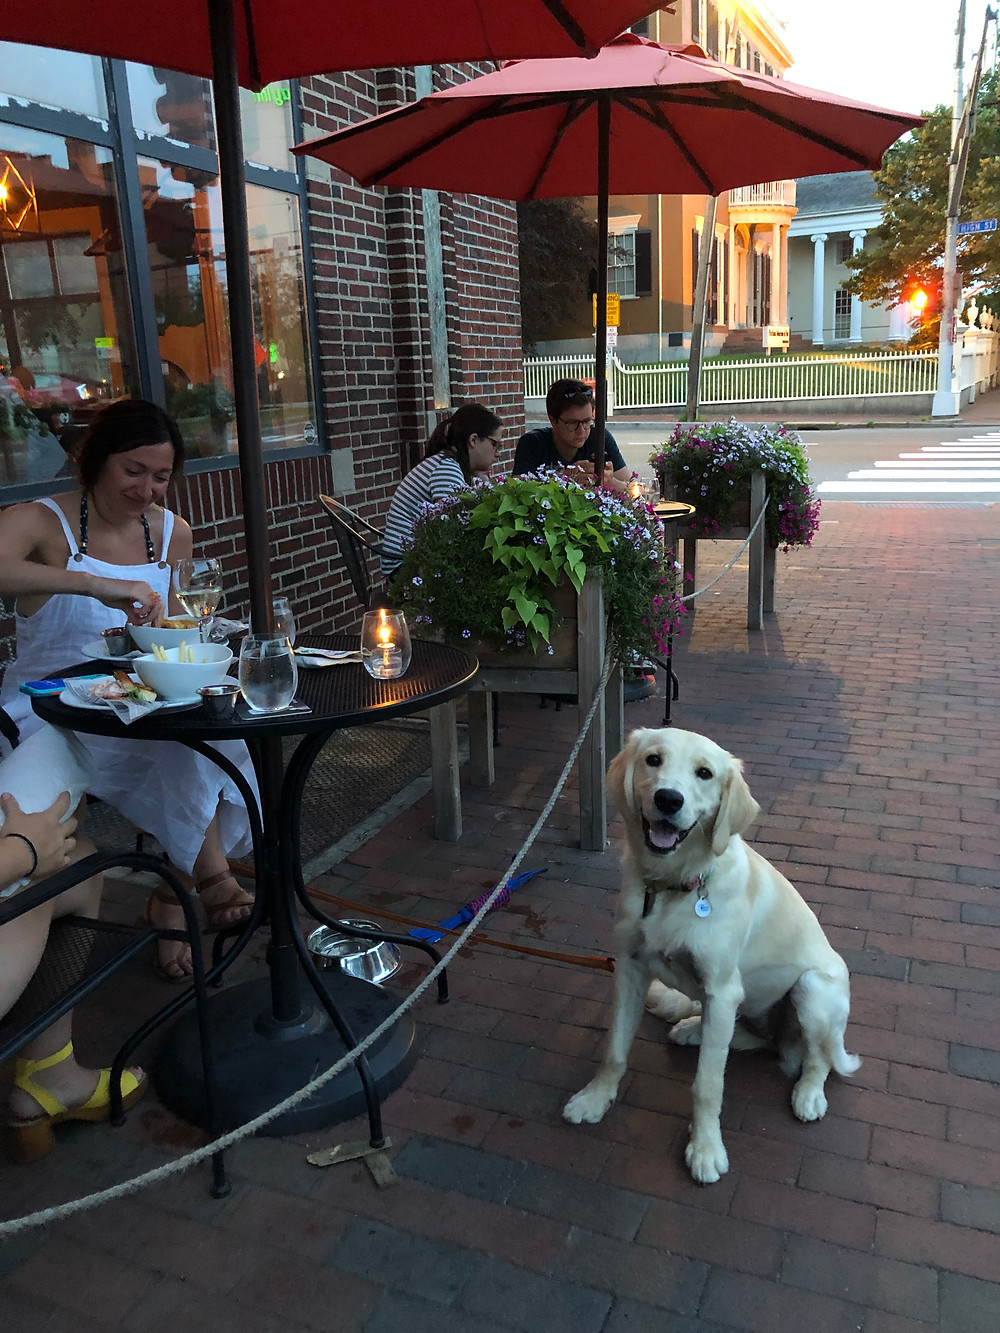 Dog friendly patio dining in Portland, Maine.